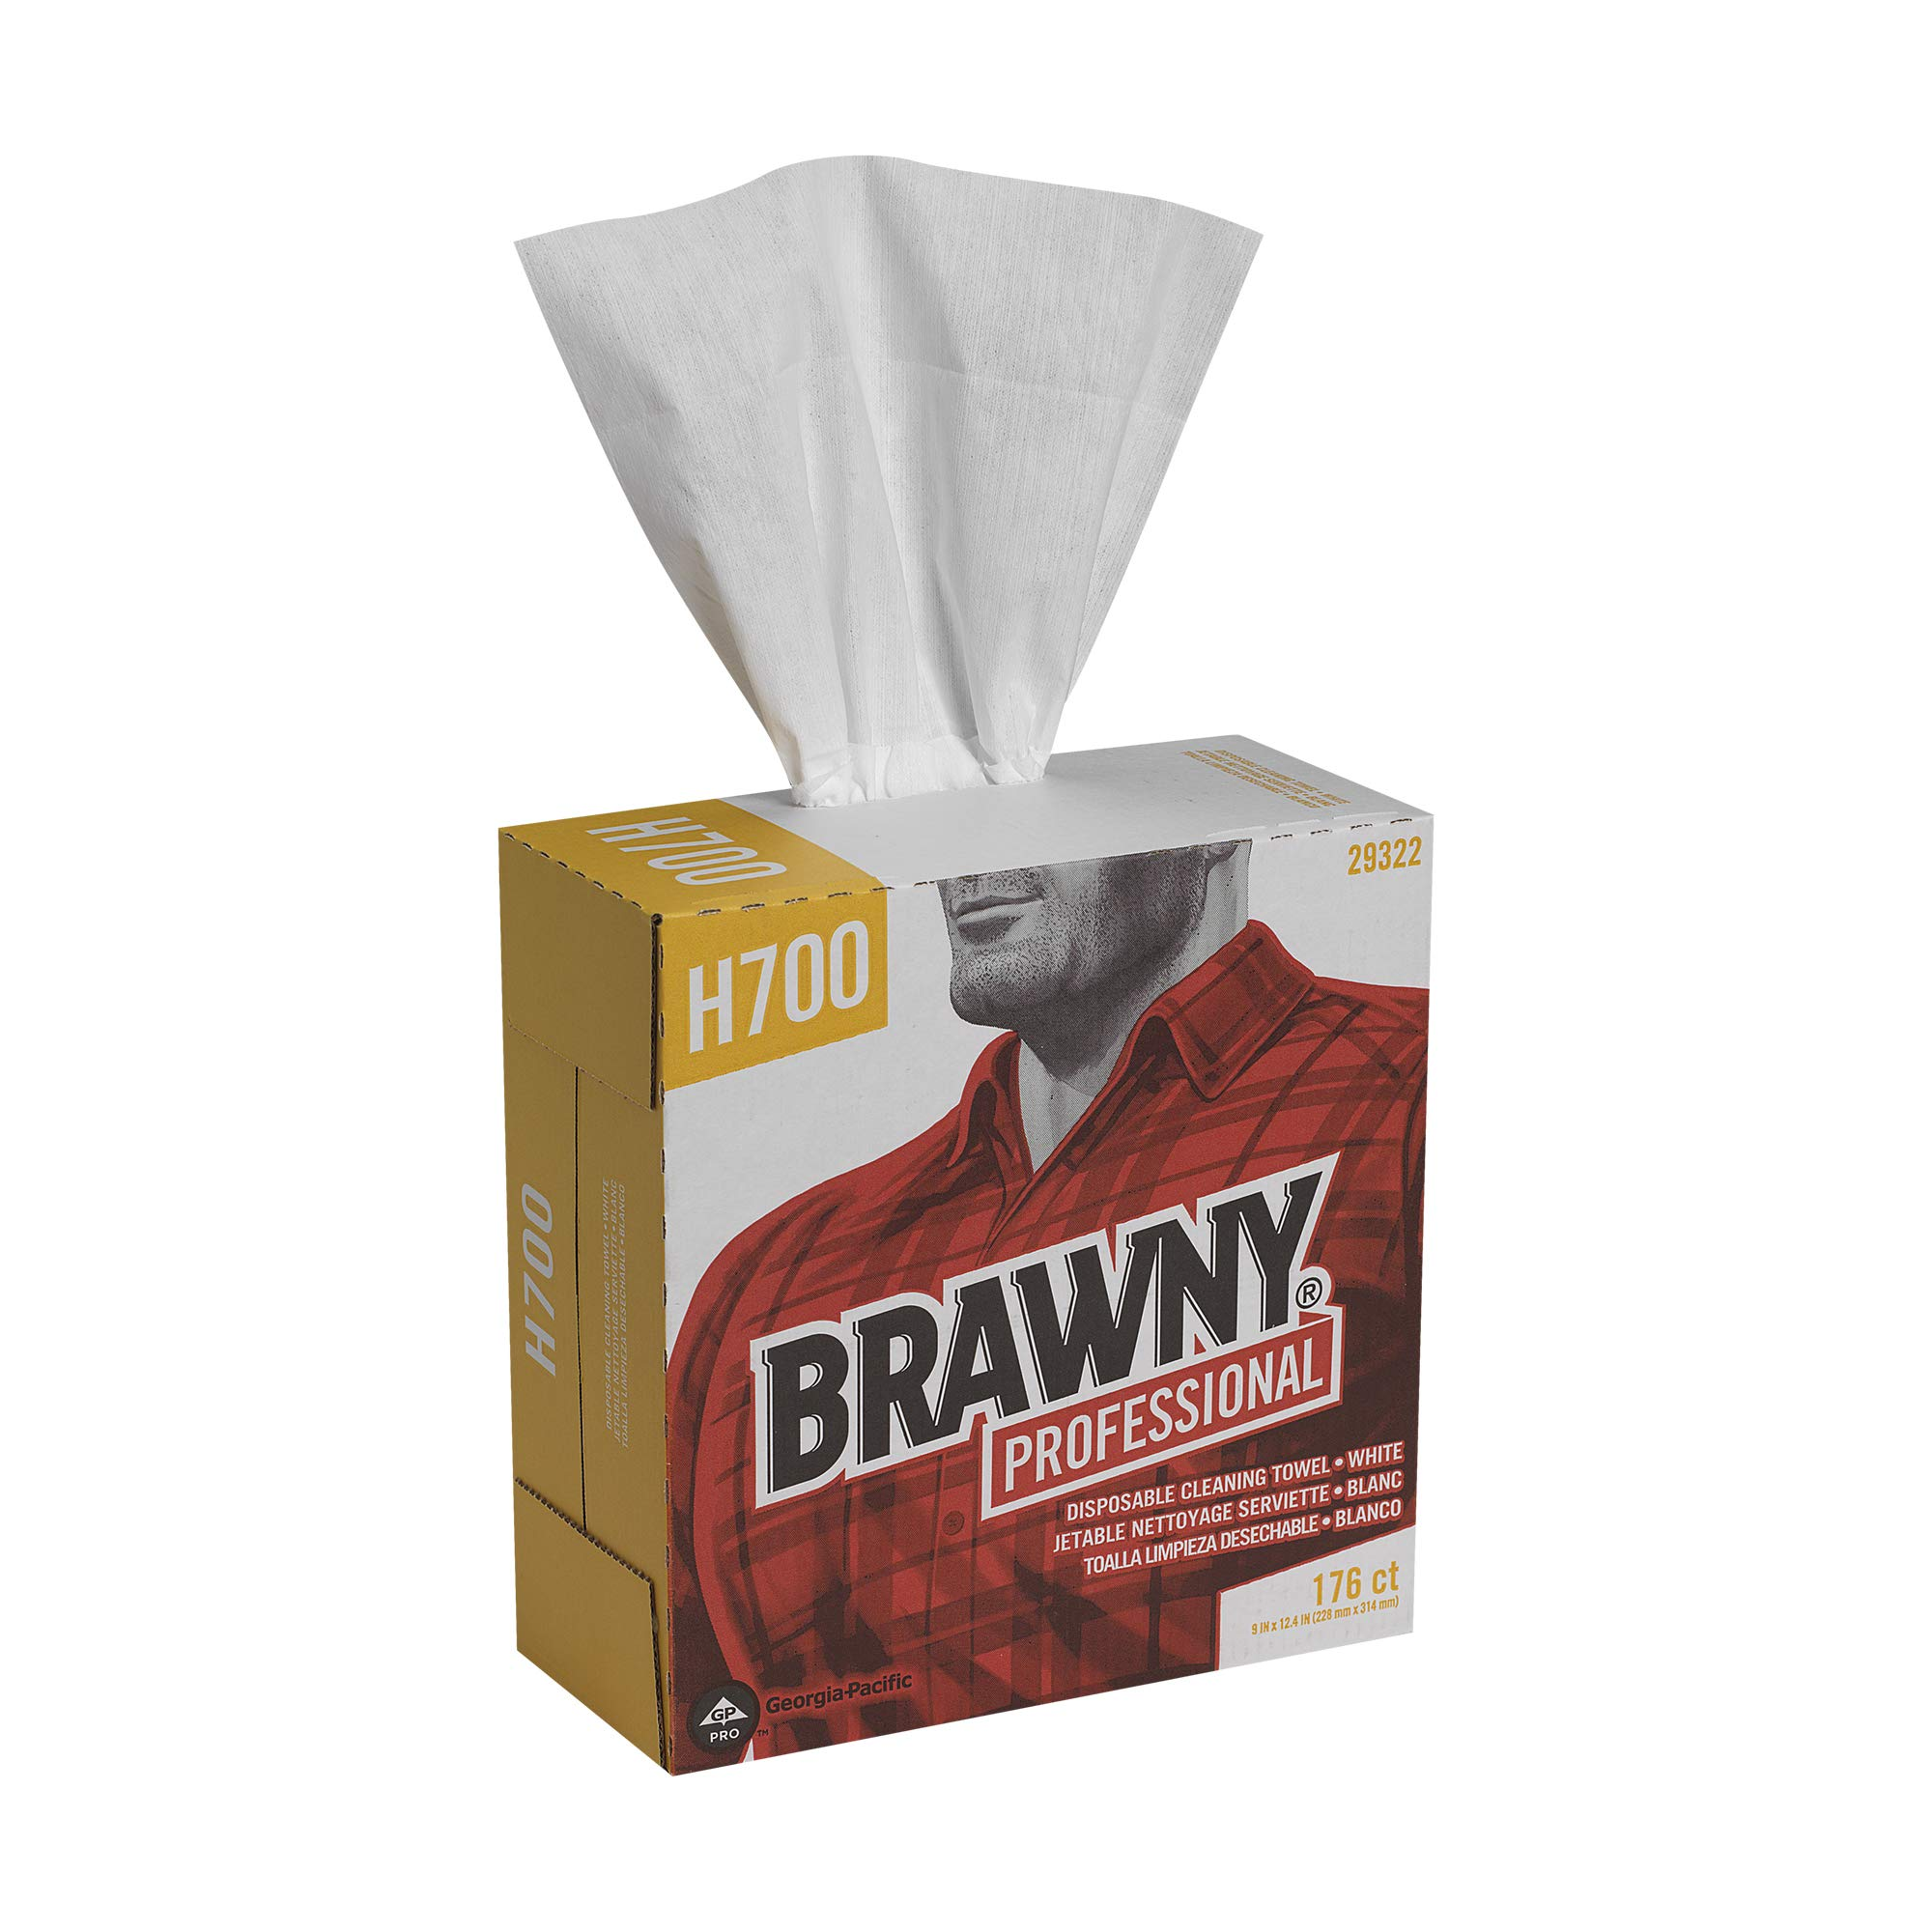 Brawny Professional Heavyweight Disposable Shop Towels by GP PRO (Georgia-Pacific), White, 29322, 176 Towels Per Box, 10 Boxes Per Case (1760 Total)